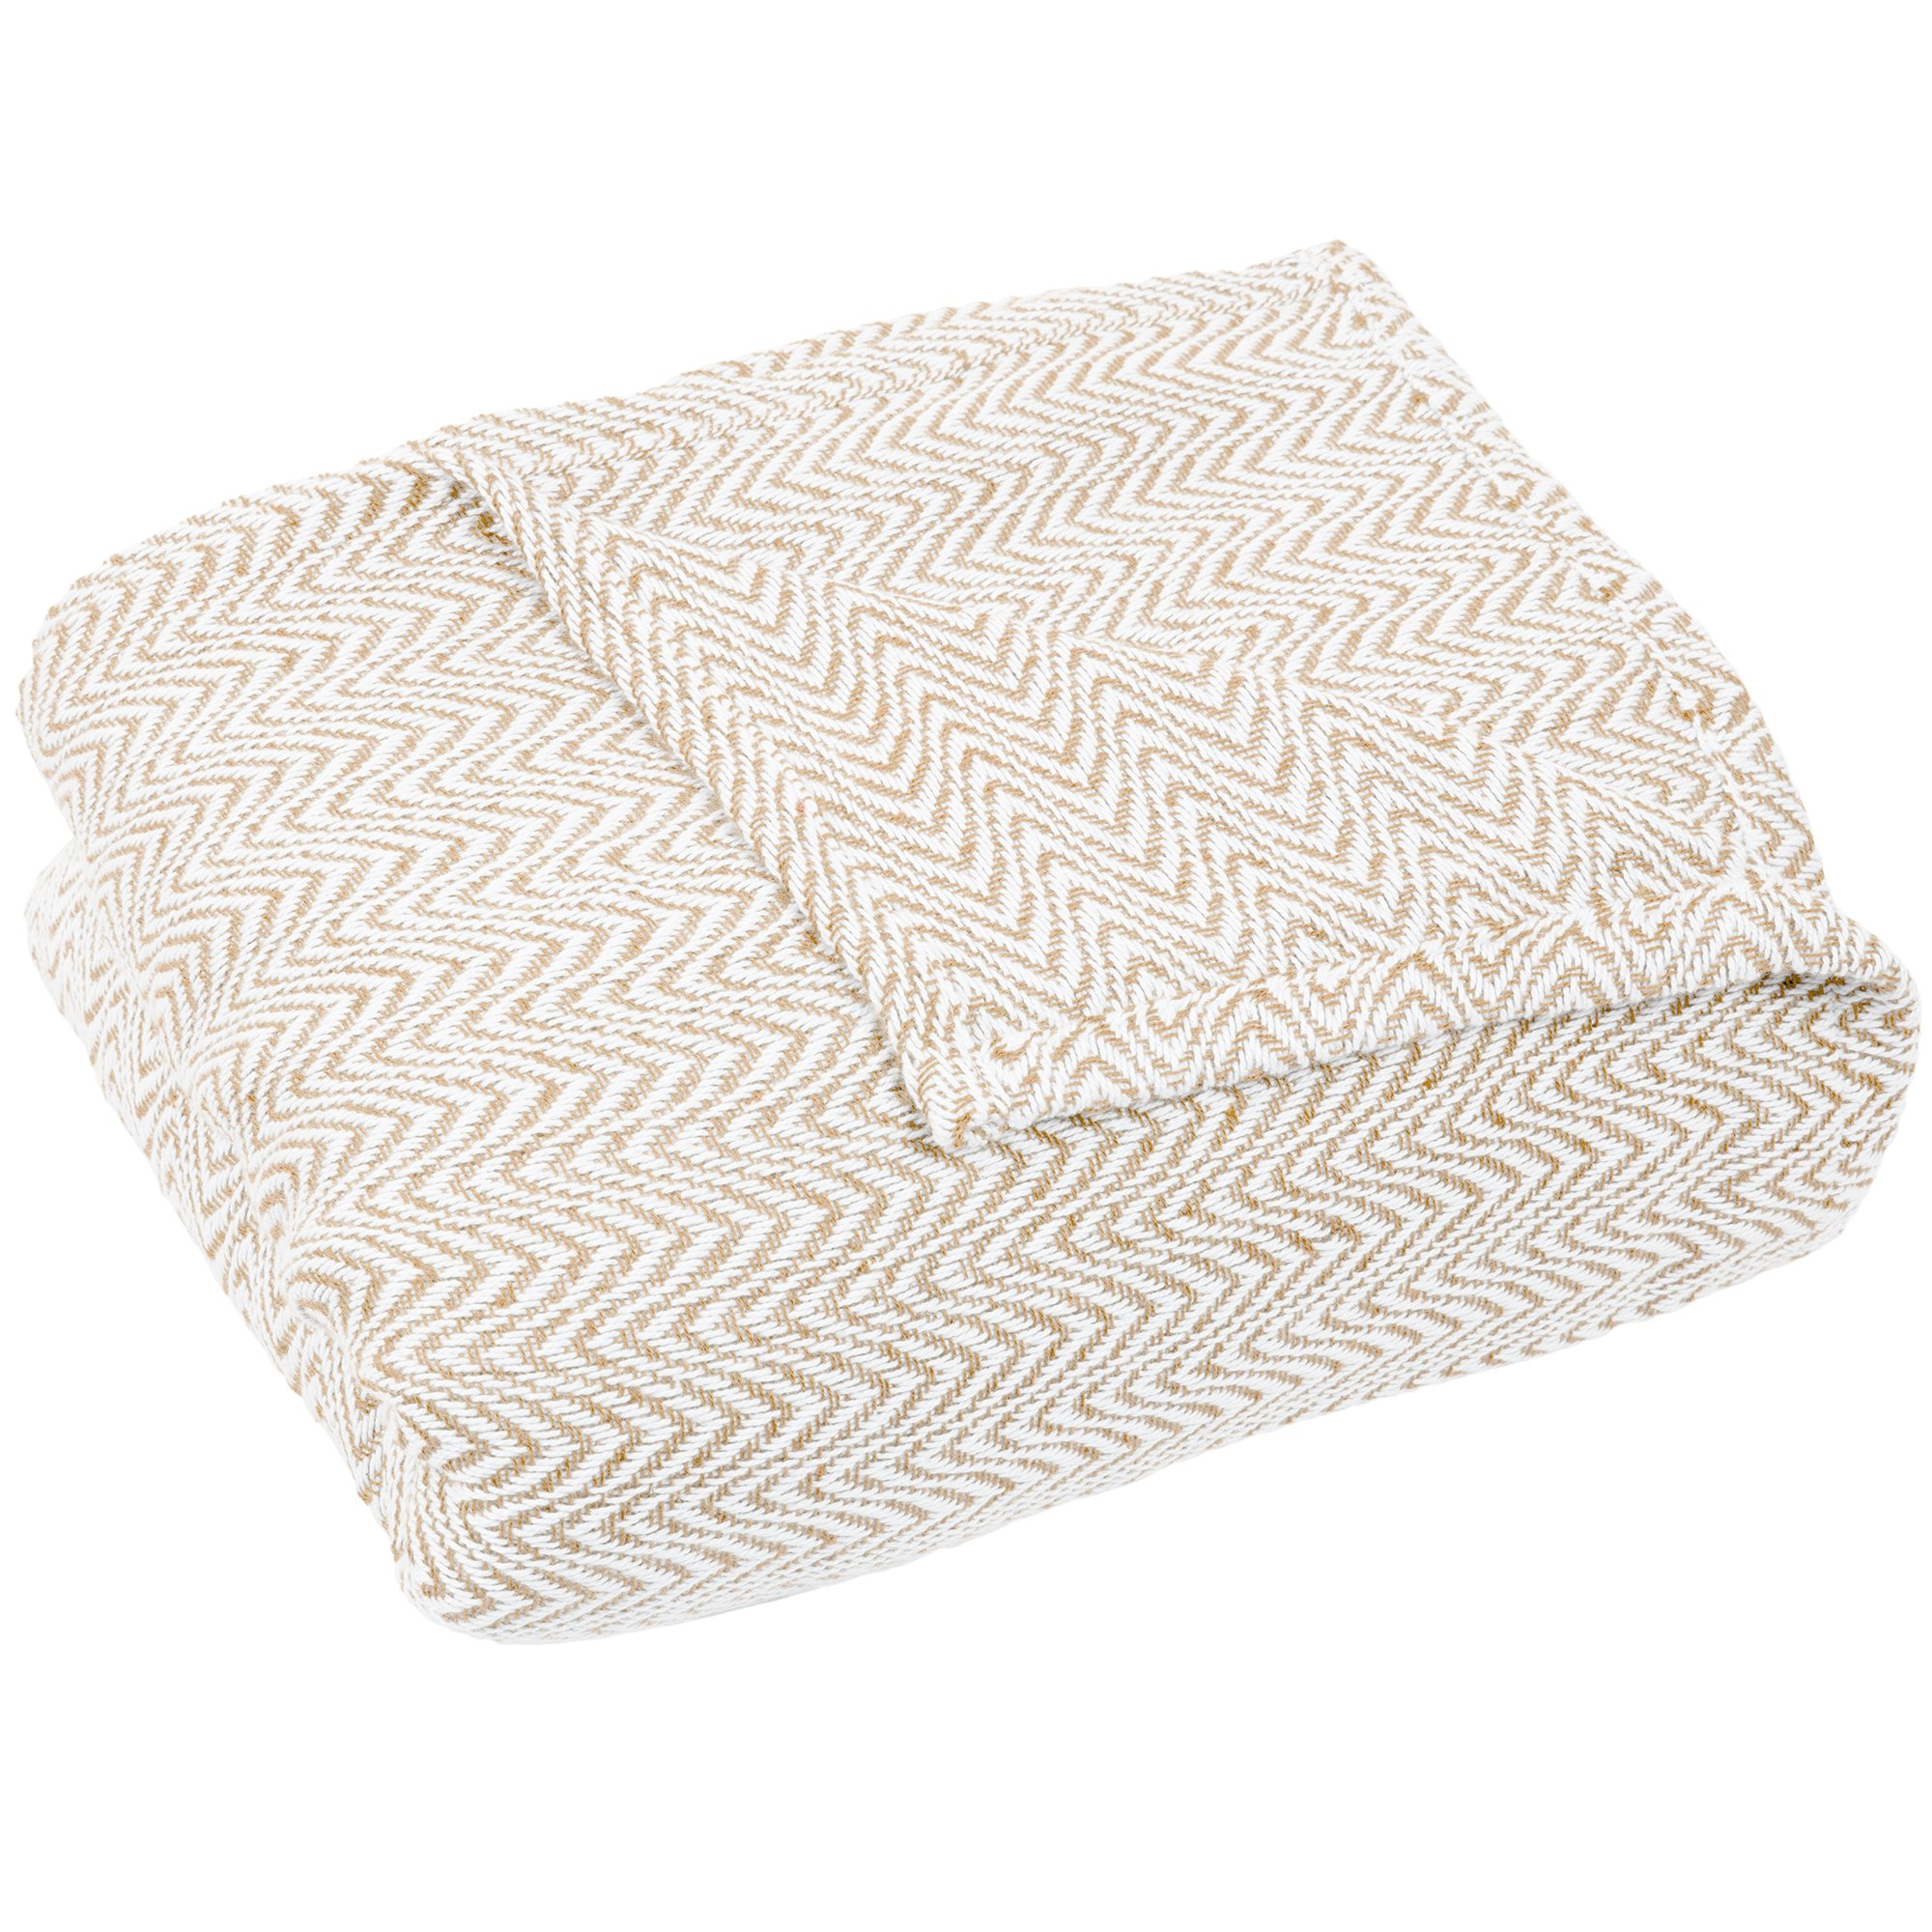 Lavish Home Blanket-100% Cotton King Chevron Luxury Soft Blanket by Taupe